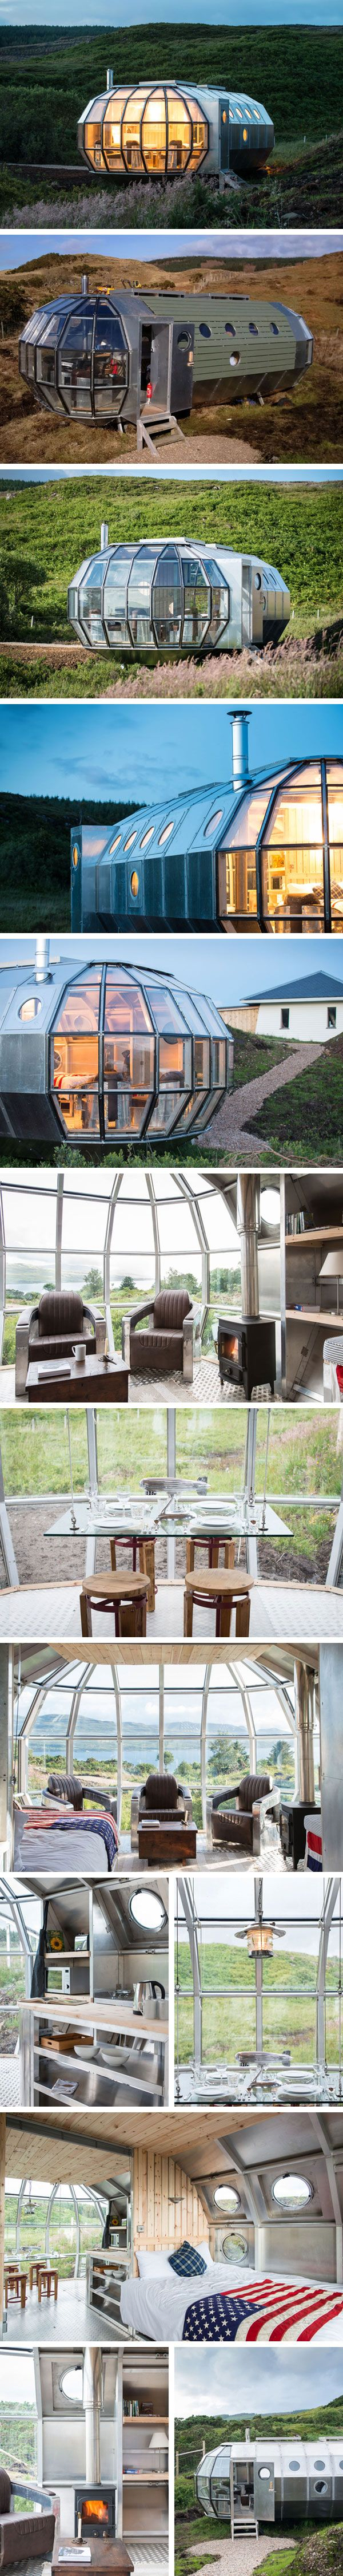 Мобильный дом AirShip Homes от Out Of BLUE #tinyhomesdigest #tinyhouse #smallhouse #ecohouse #countrylife